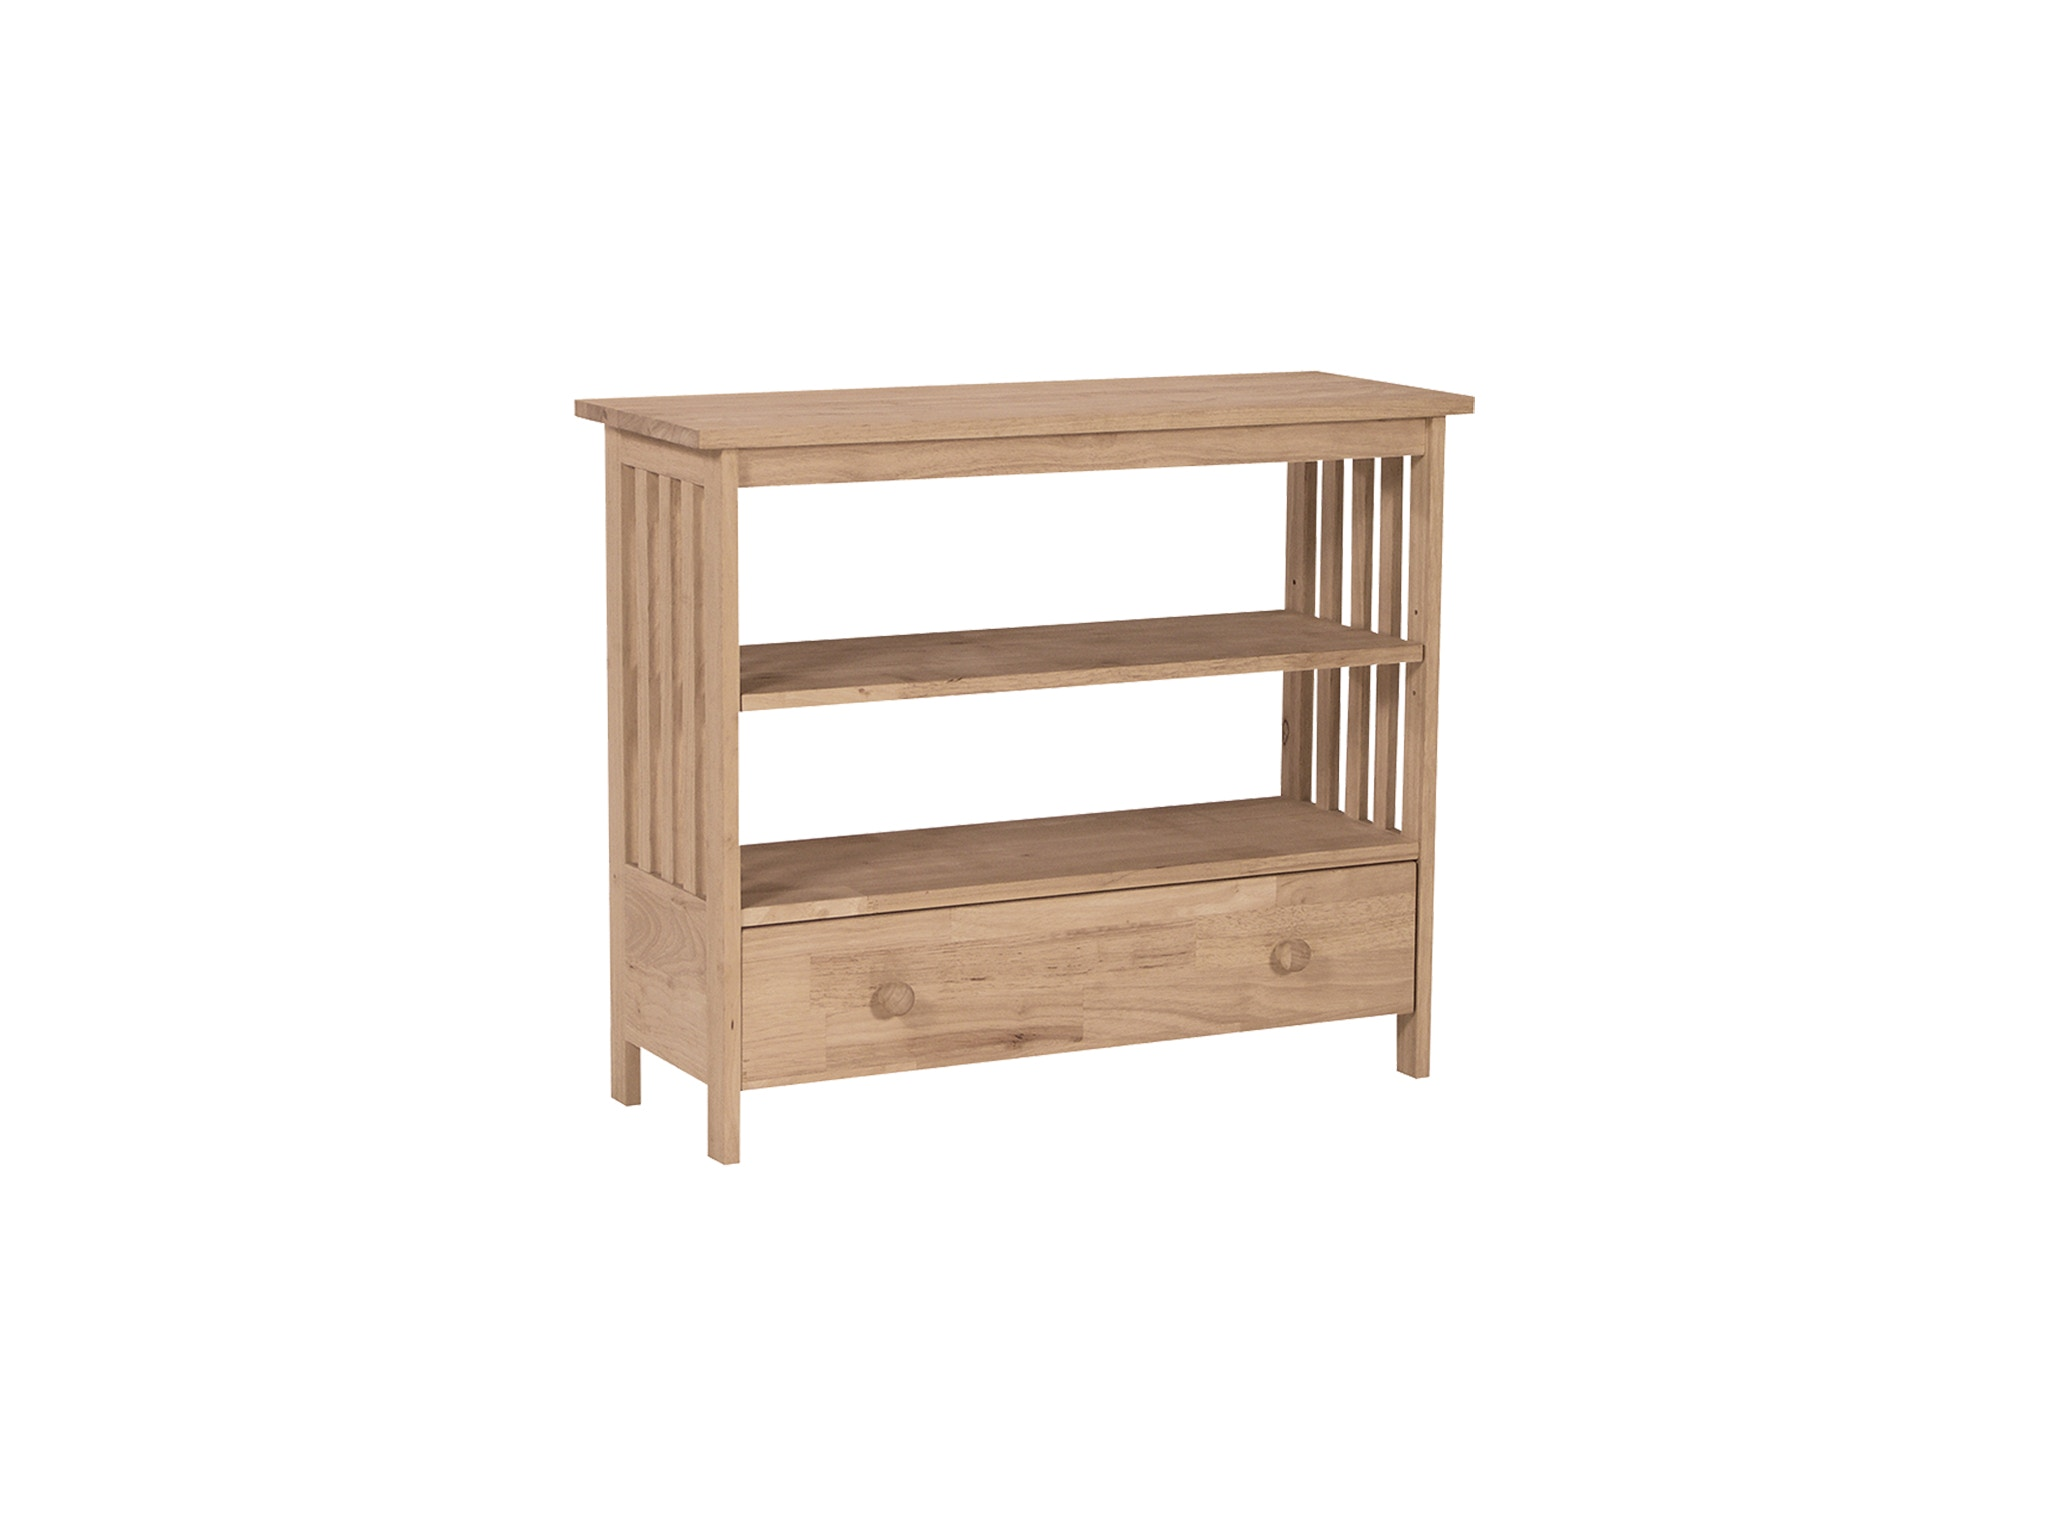 John Thomas Home Entertainment 36'' Mission Entertainment Stand<br><br>One adjustable shelf & extension glides